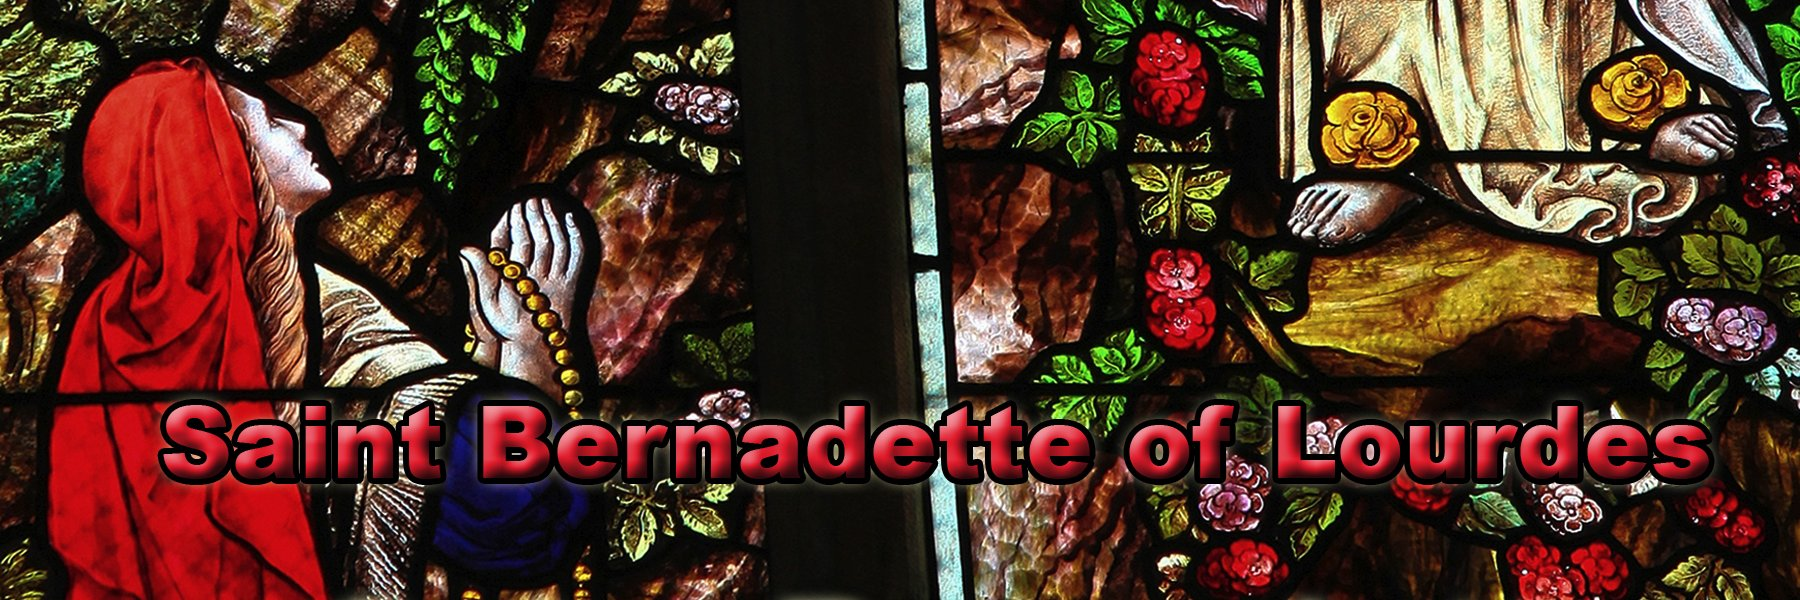 Saint Bernadette the visionary of Lourdes